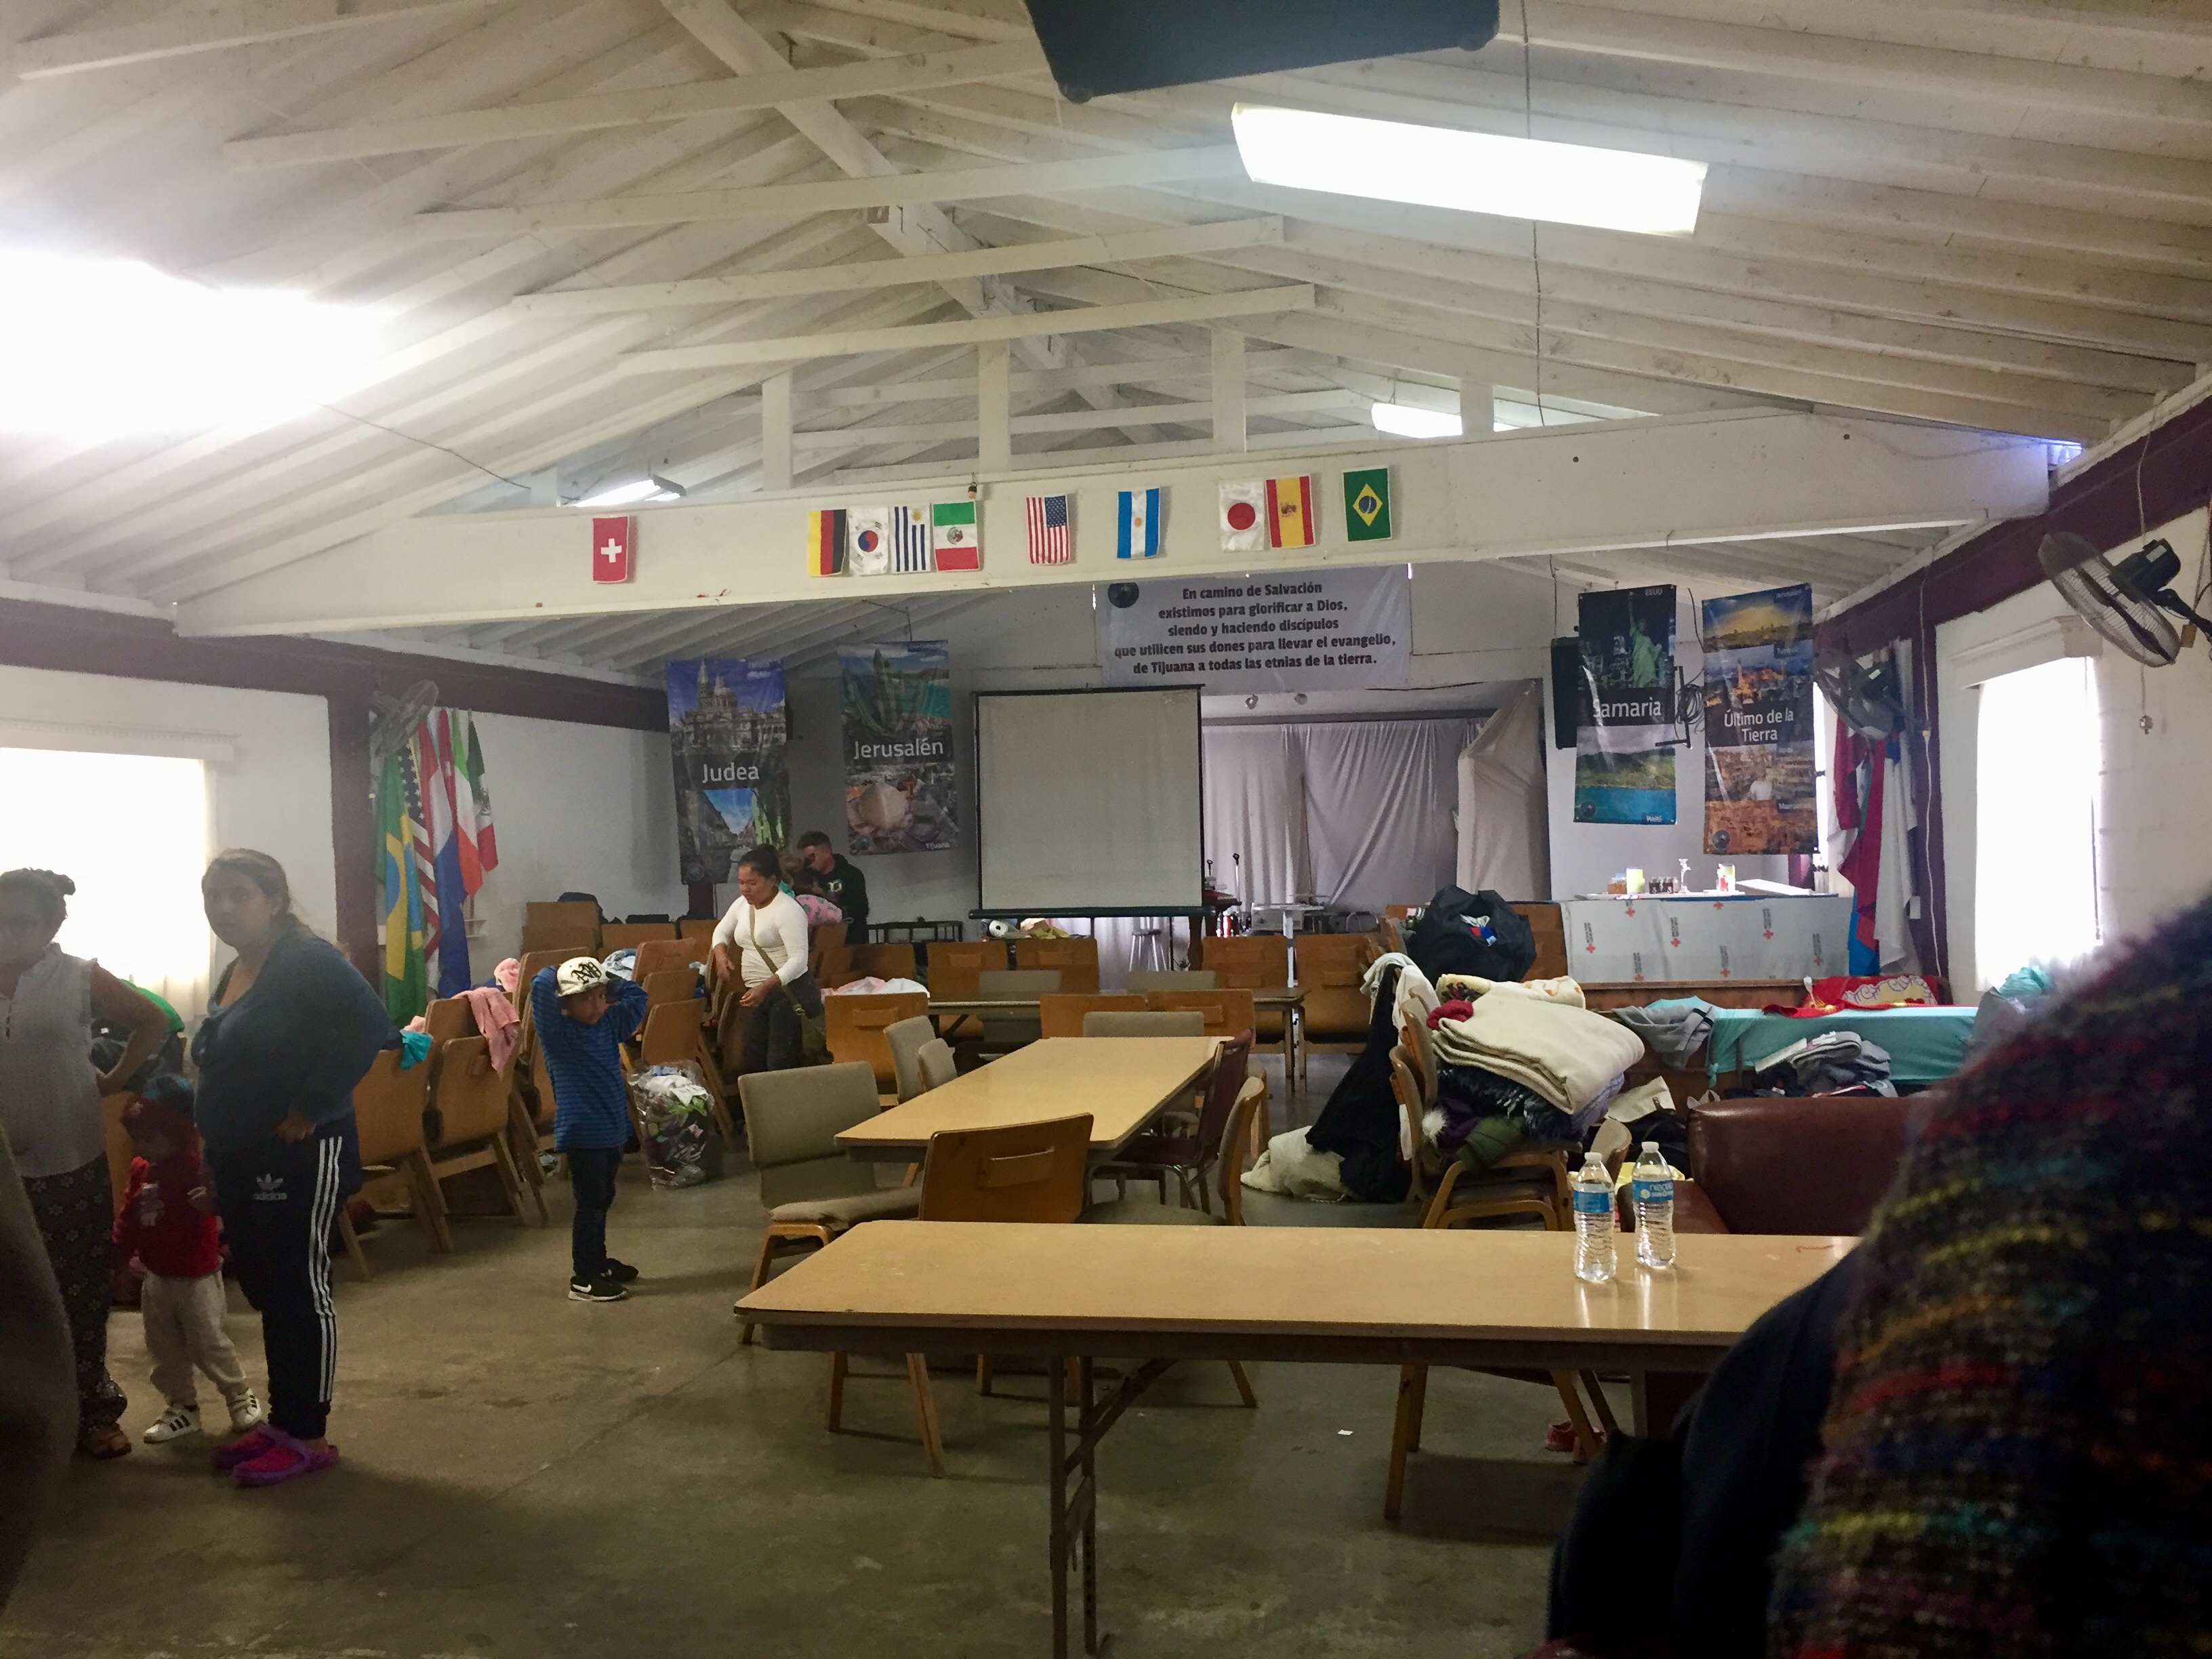 Sanctuary becomes shelter at The Way of Salvation Christian Baptist Church (Tijuana)